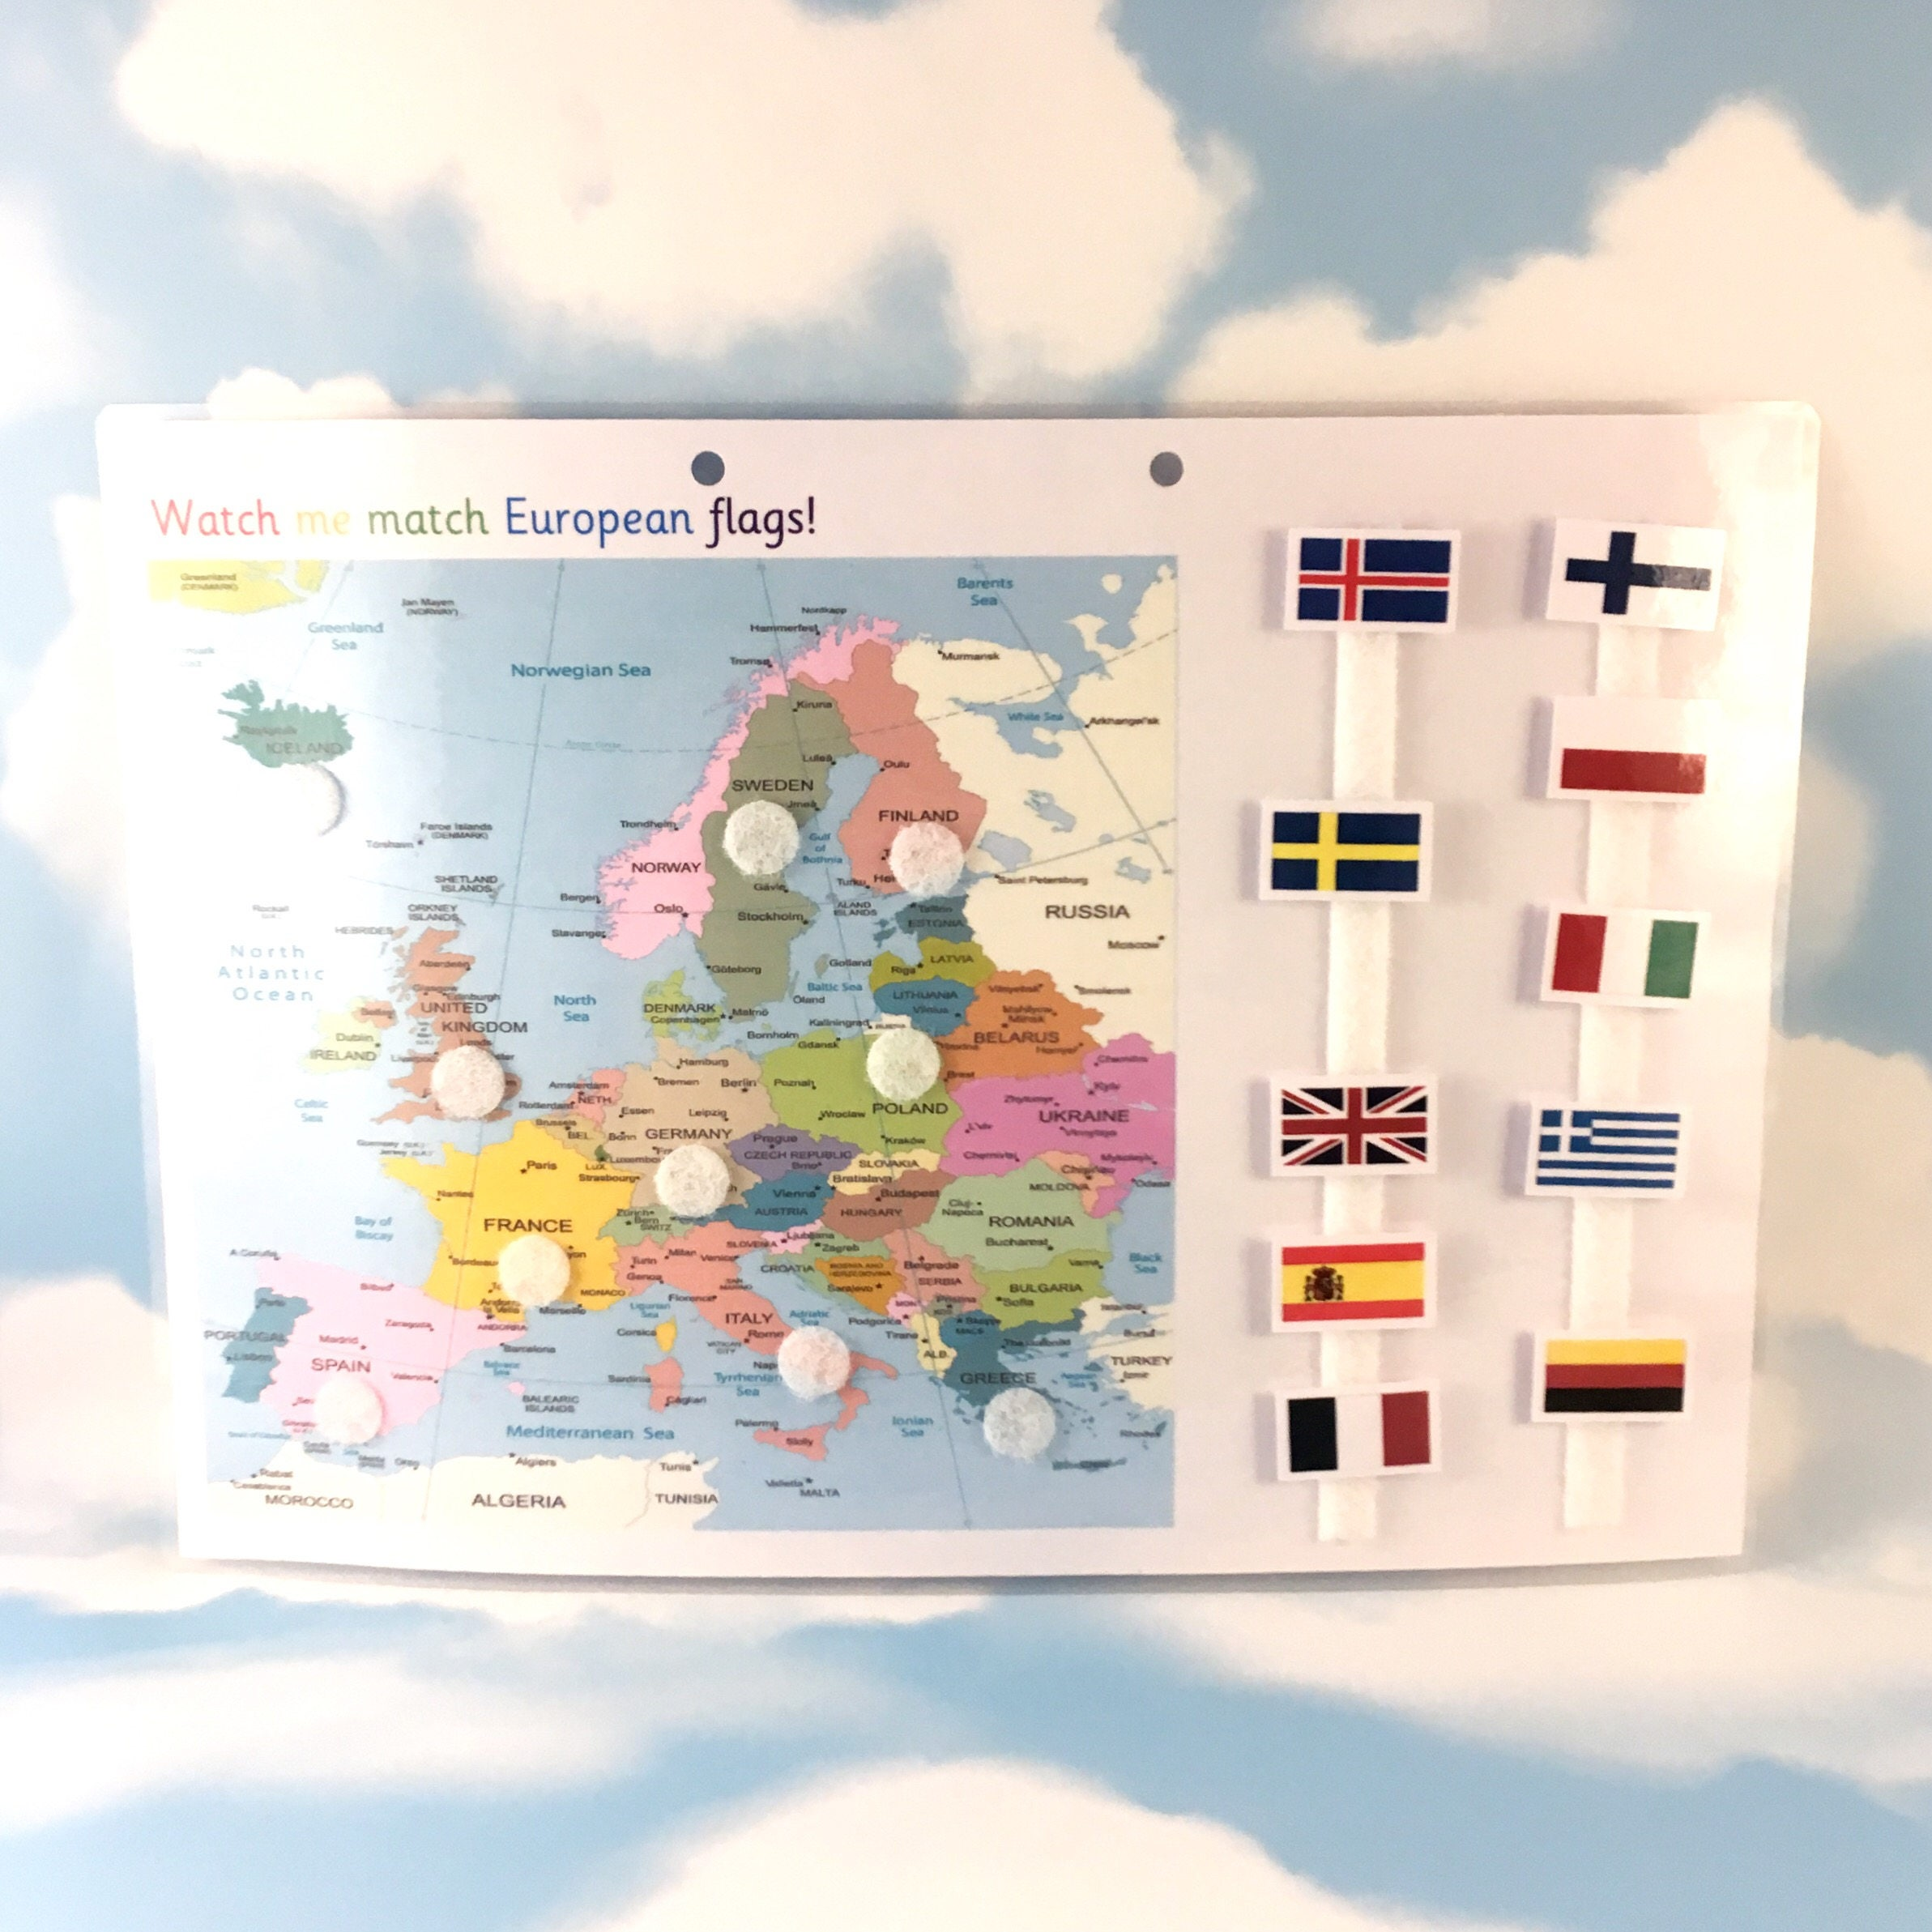 Map Of France Ks2.European Flags And Map Ks2 Matching Game Geography Year 3 Visual Learner Removable Pieces Matching Homework Resource